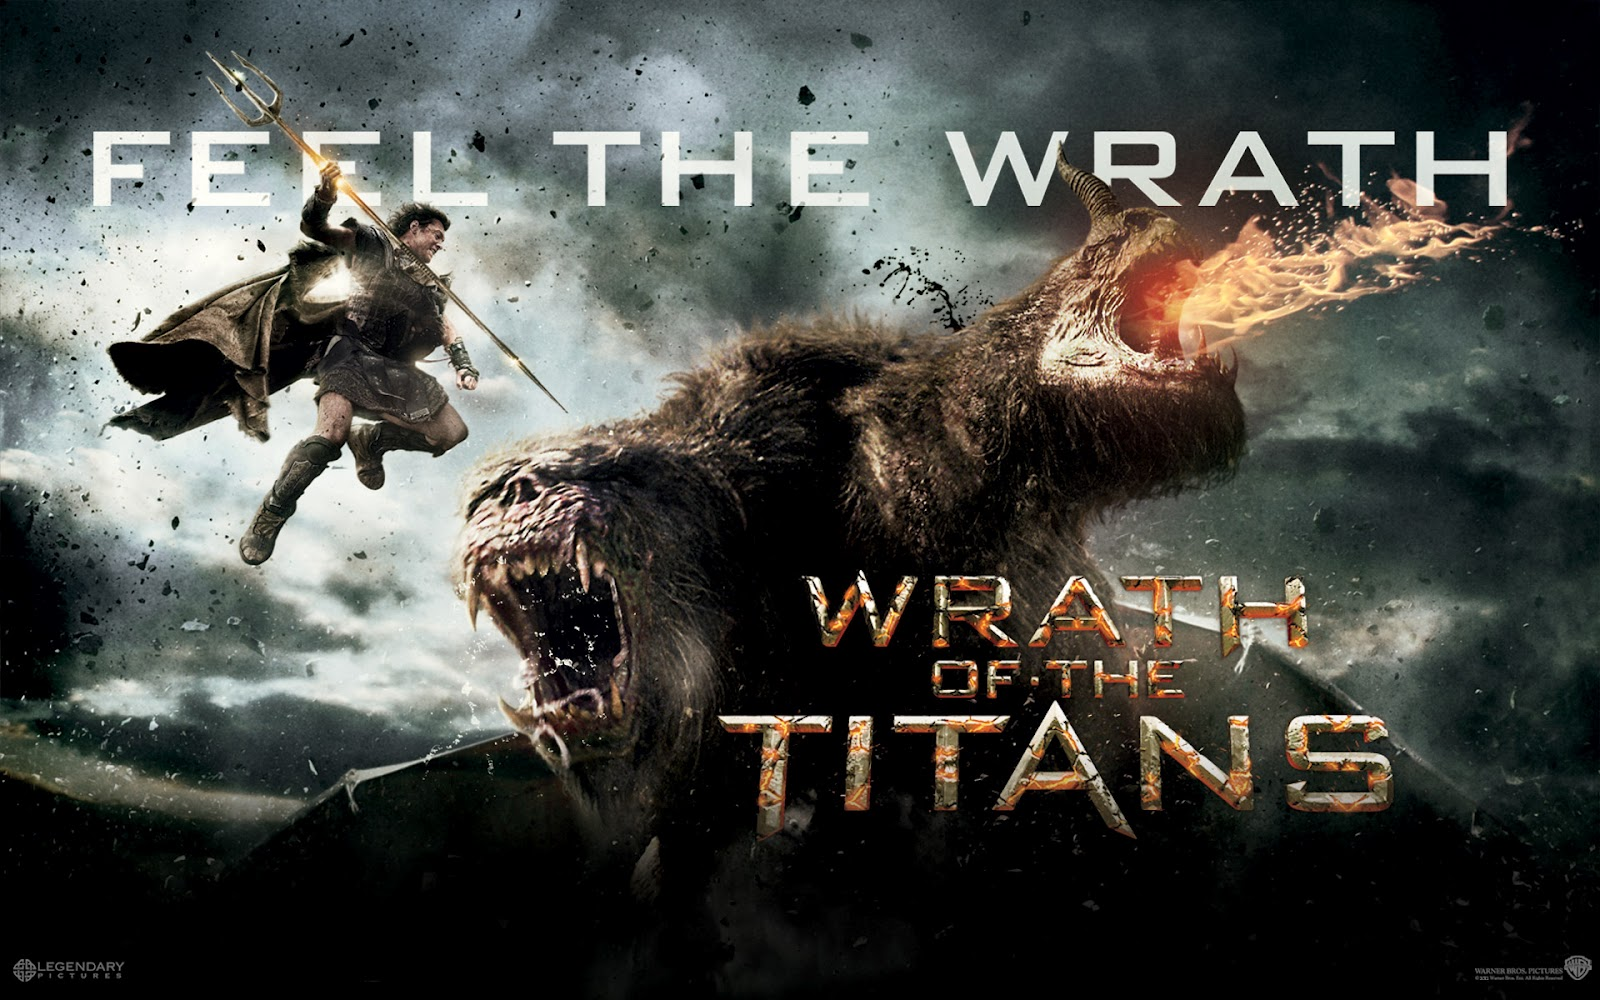 http://3.bp.blogspot.com/-pmbCfPEOJHk/T0aP_DSOq5I/AAAAAAAAFPg/zc62thN4Lgs/s1600/Wrath+of+The+Titans+13+wallpaper_3_1920x1200.jpg